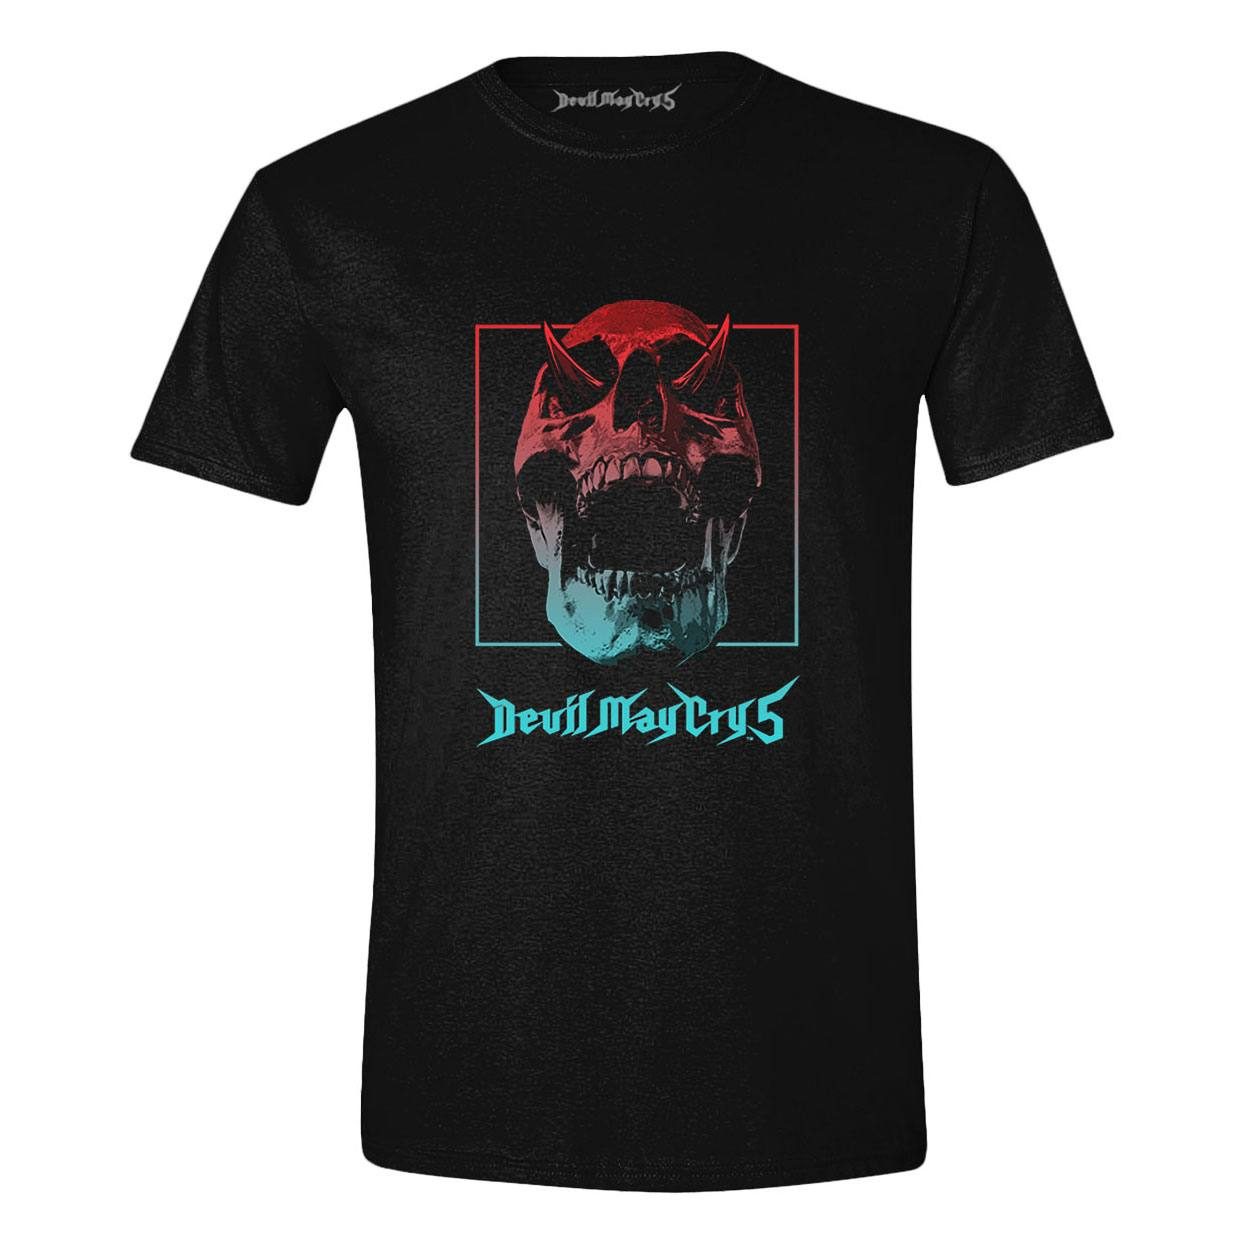 Devil May Cry 5 T-Shirt Skull Gradient Size M